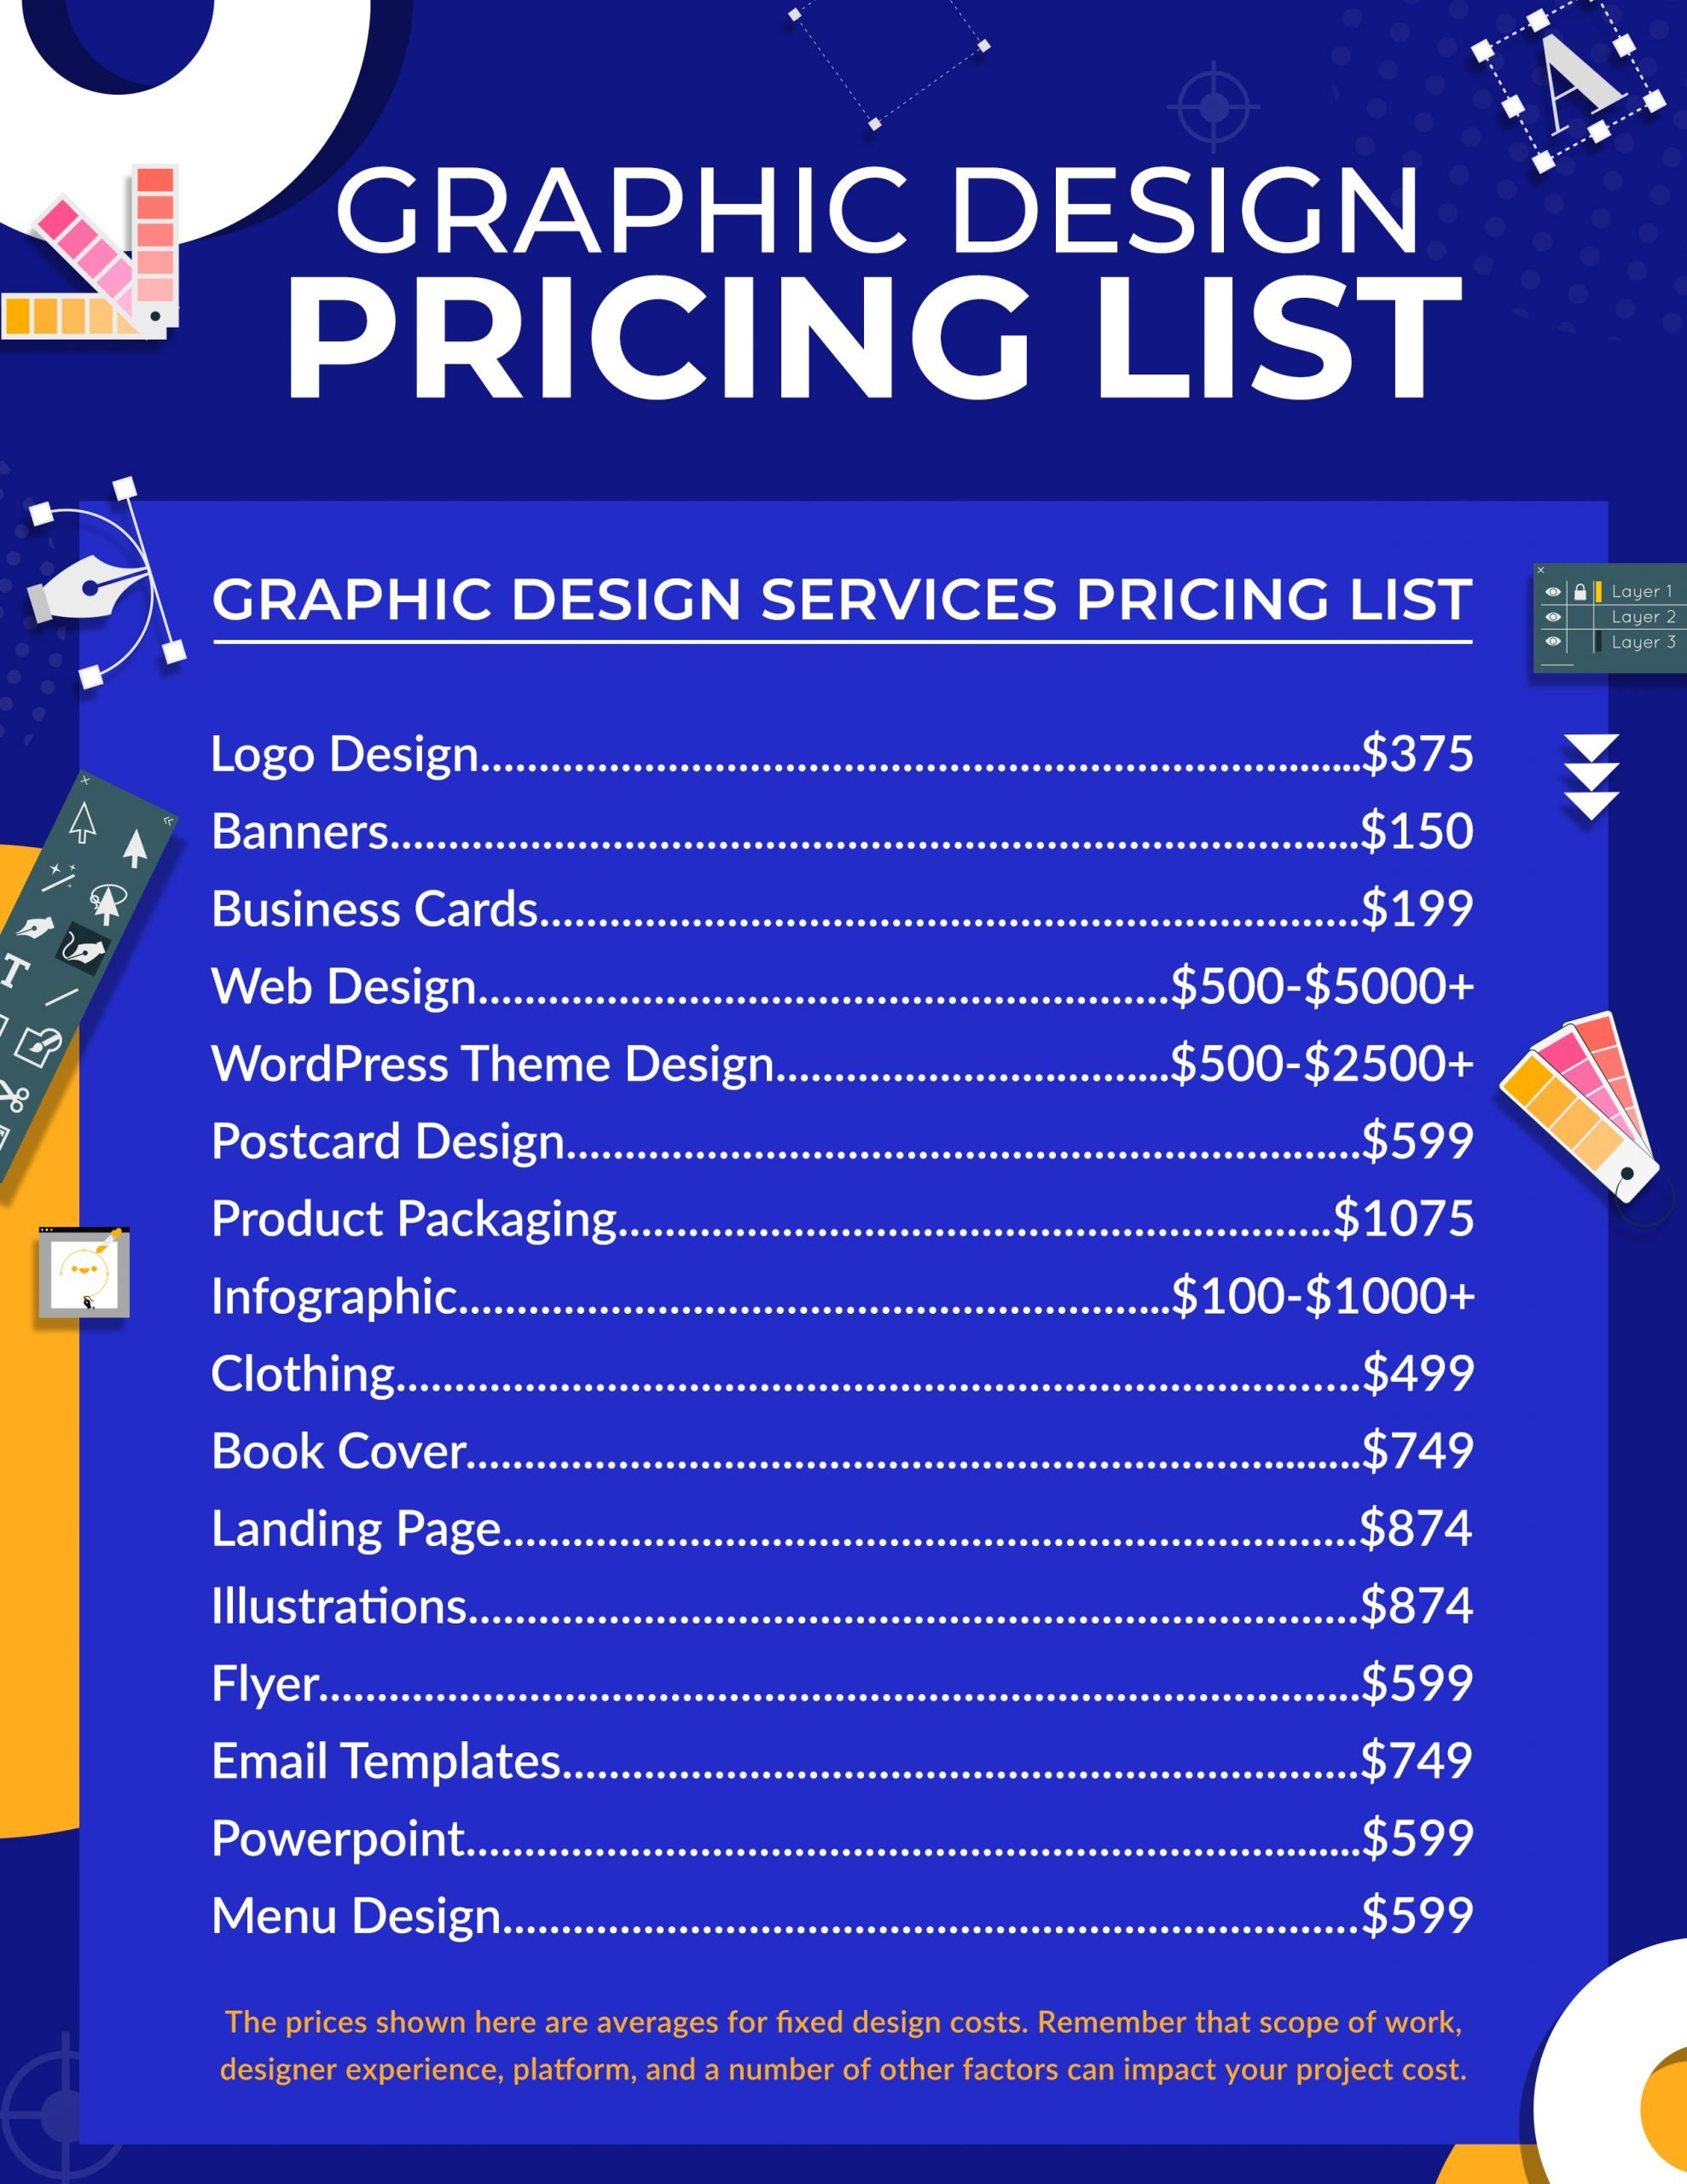 Graphic Design Fees and Pricing Menu